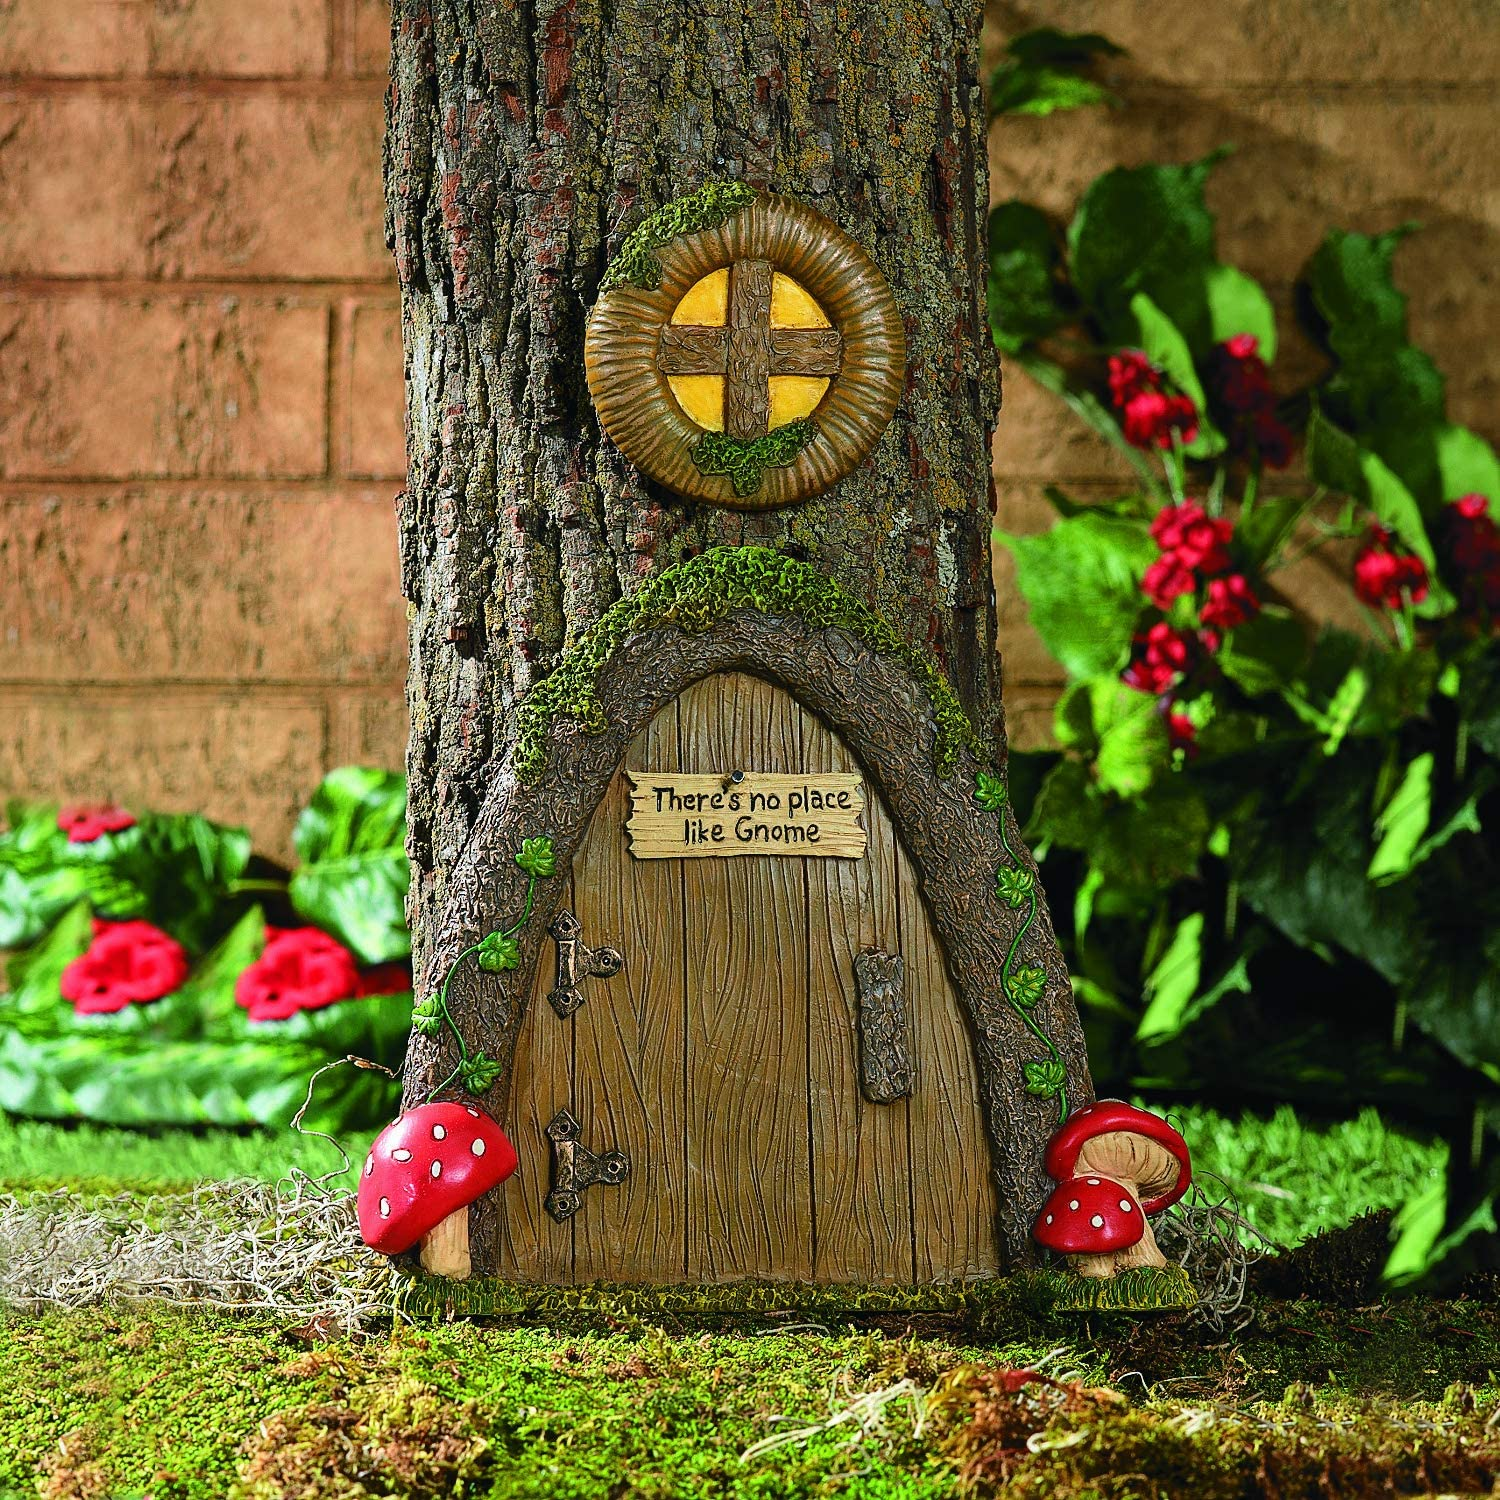 JACK GNOME ON TREE TRUNK GARDEN ORNAMENT HAND PAINTED 1 FOOT TALL!!